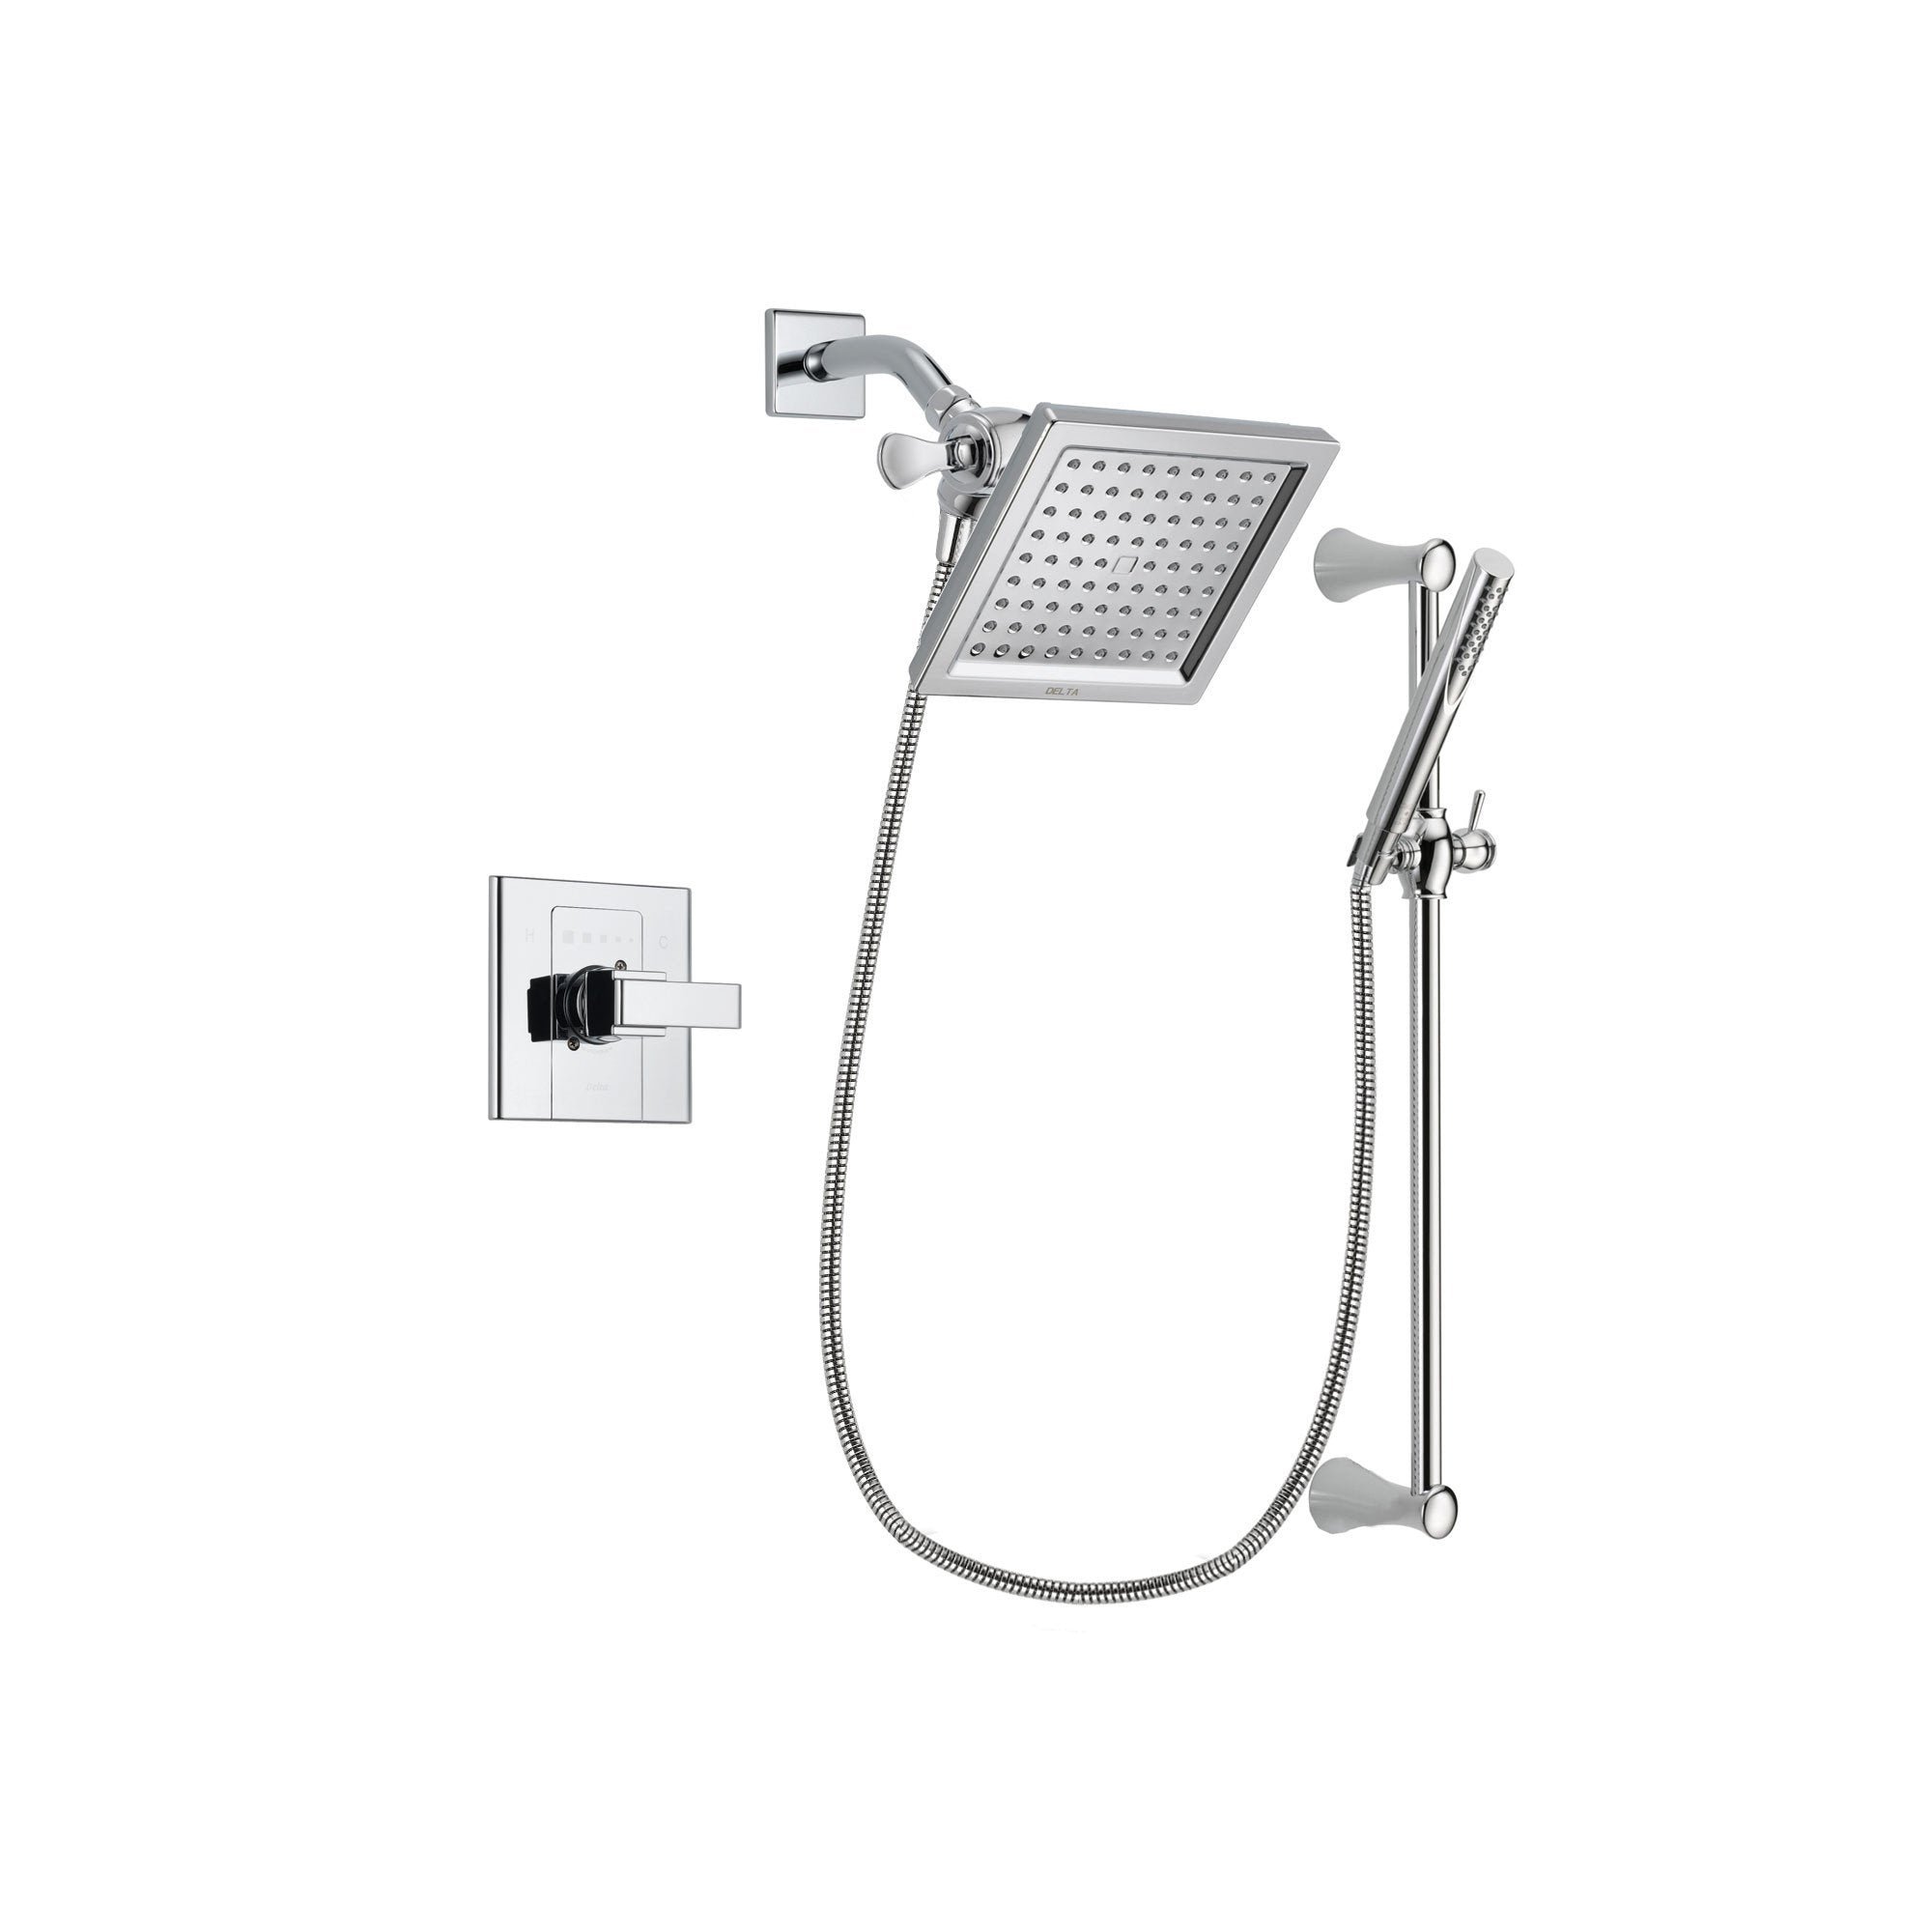 Delta Arzo Chrome Finish Shower Faucet System Package with 6.5-inch Square Rain Showerhead and Modern Wall Mount Slide Bar with Handheld Shower Spray Includes Rough-in Valve DSP0268V